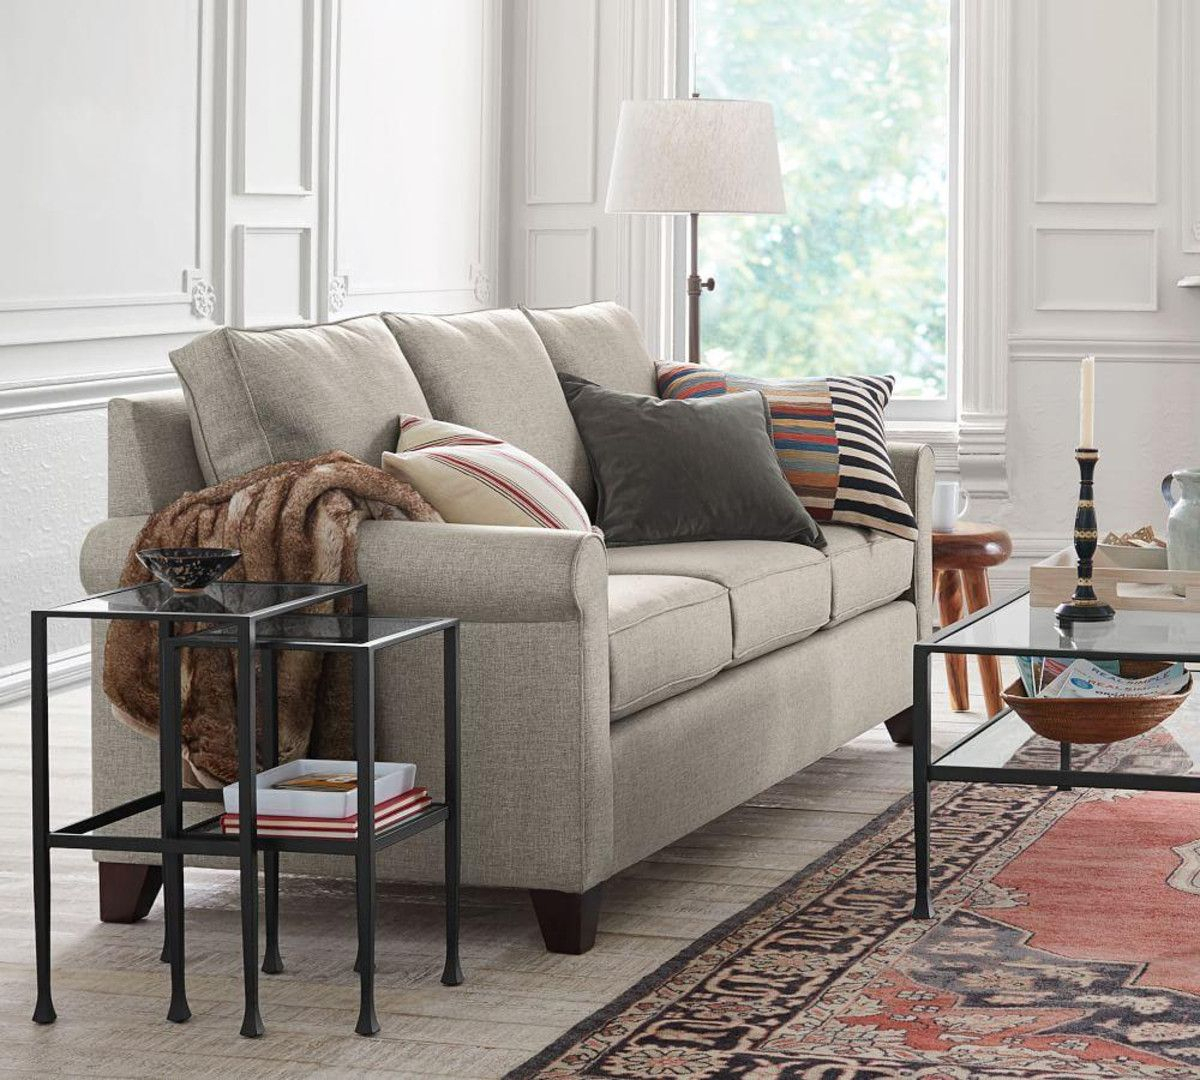 Cameron Upholstered Sofa – Oatmeal (224 Cm) | Lil Glen | Pinterest Within Cameron Sofa Chairs (Image 16 of 20)